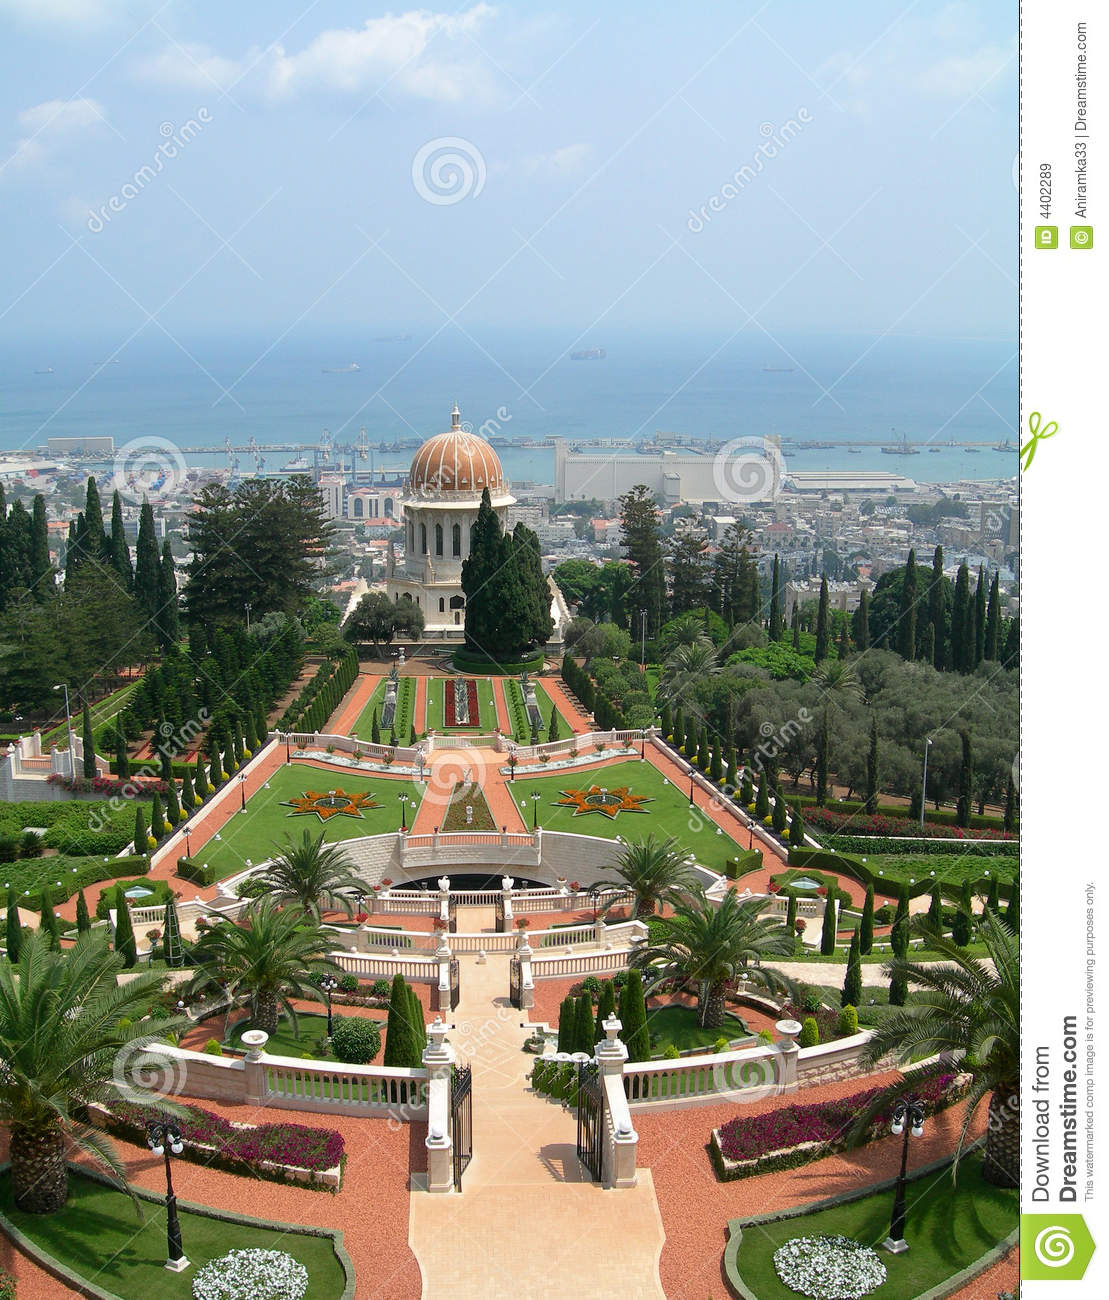 Download Bahai Srine And Garden, Israel Stock Image - Image of shrine, spiritual: 4402289